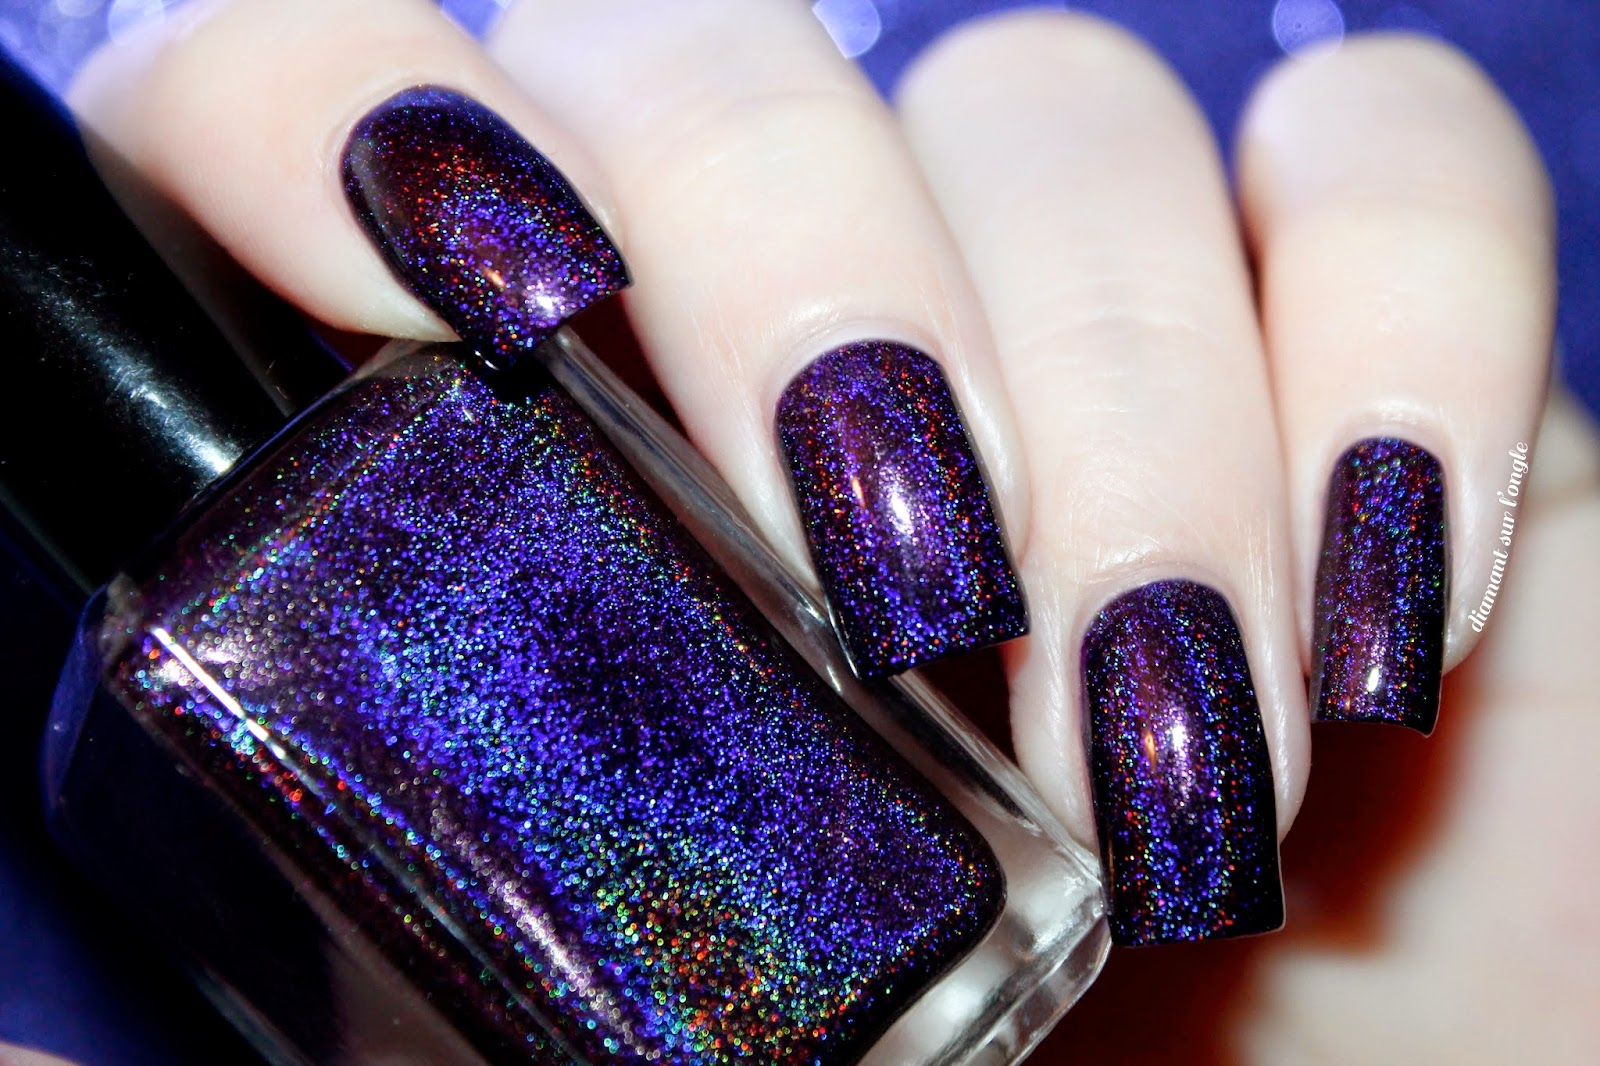 Swatch of November 2014 by Enchanted Polish